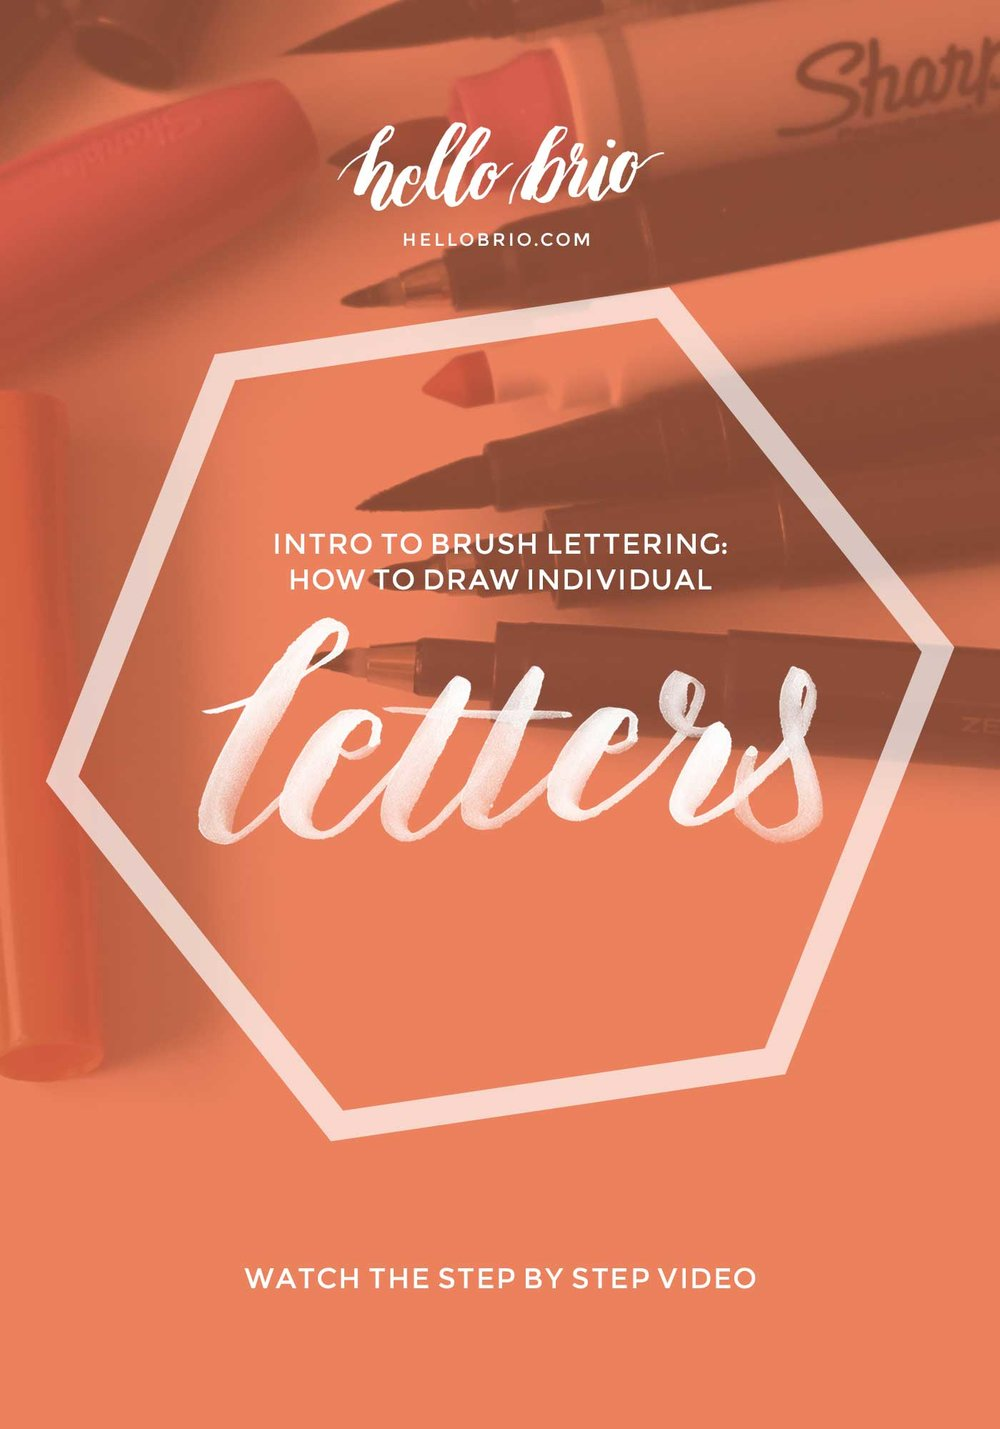 intro-to-brush-lettering-drawing-letters.jpg